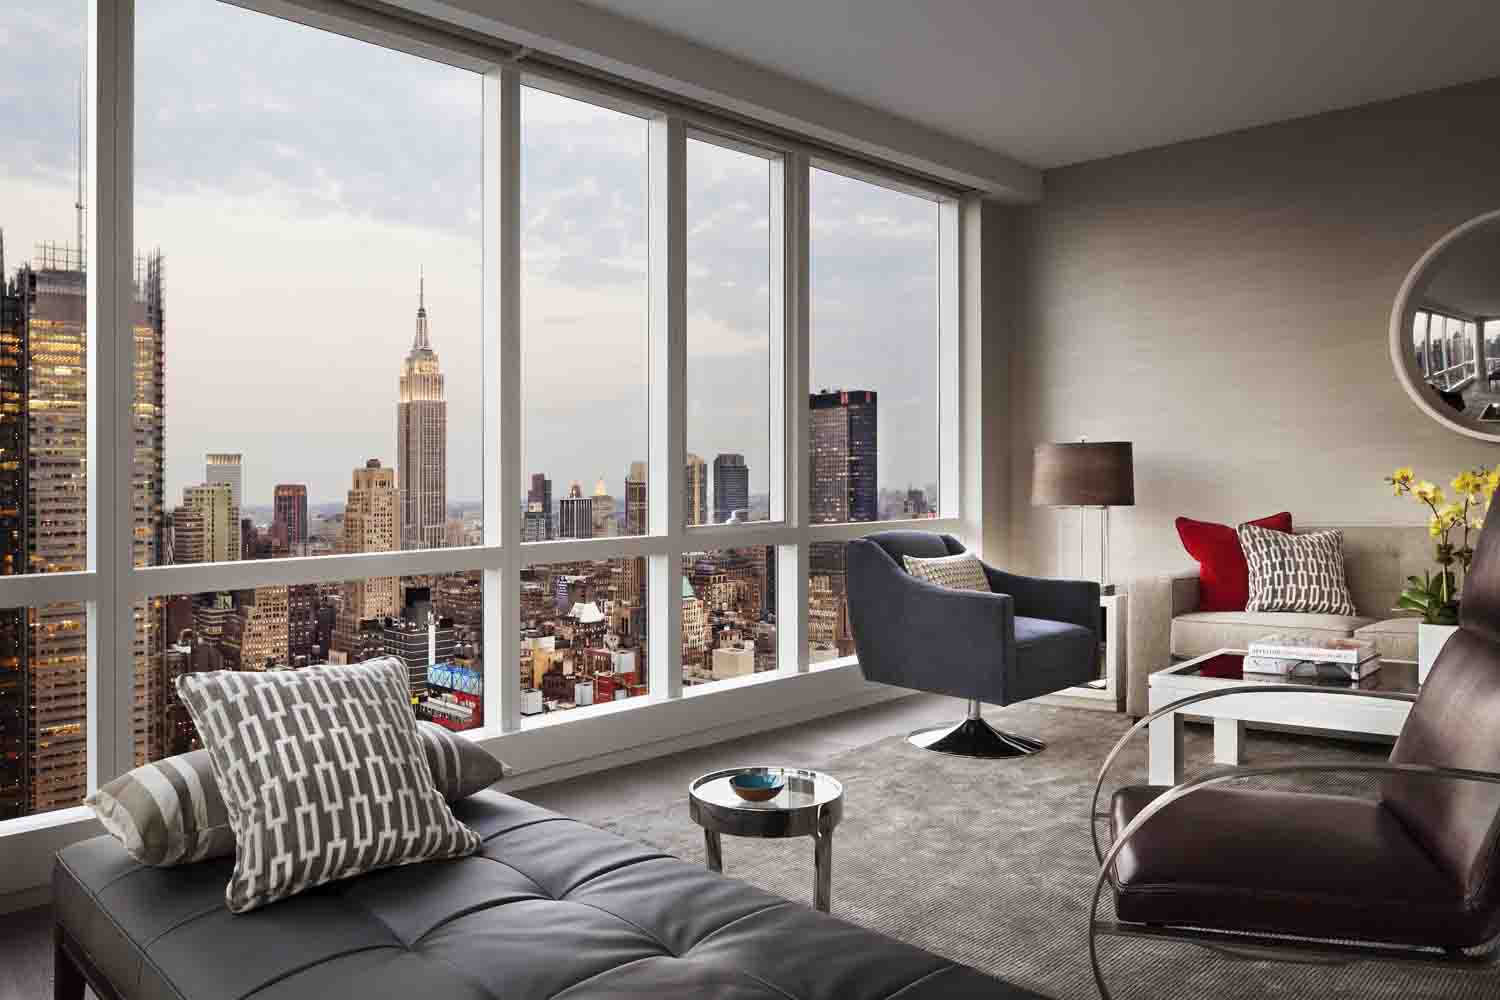 New York City Luxury Rental Blog Archives For July 2012 Luxury Rentals Manh